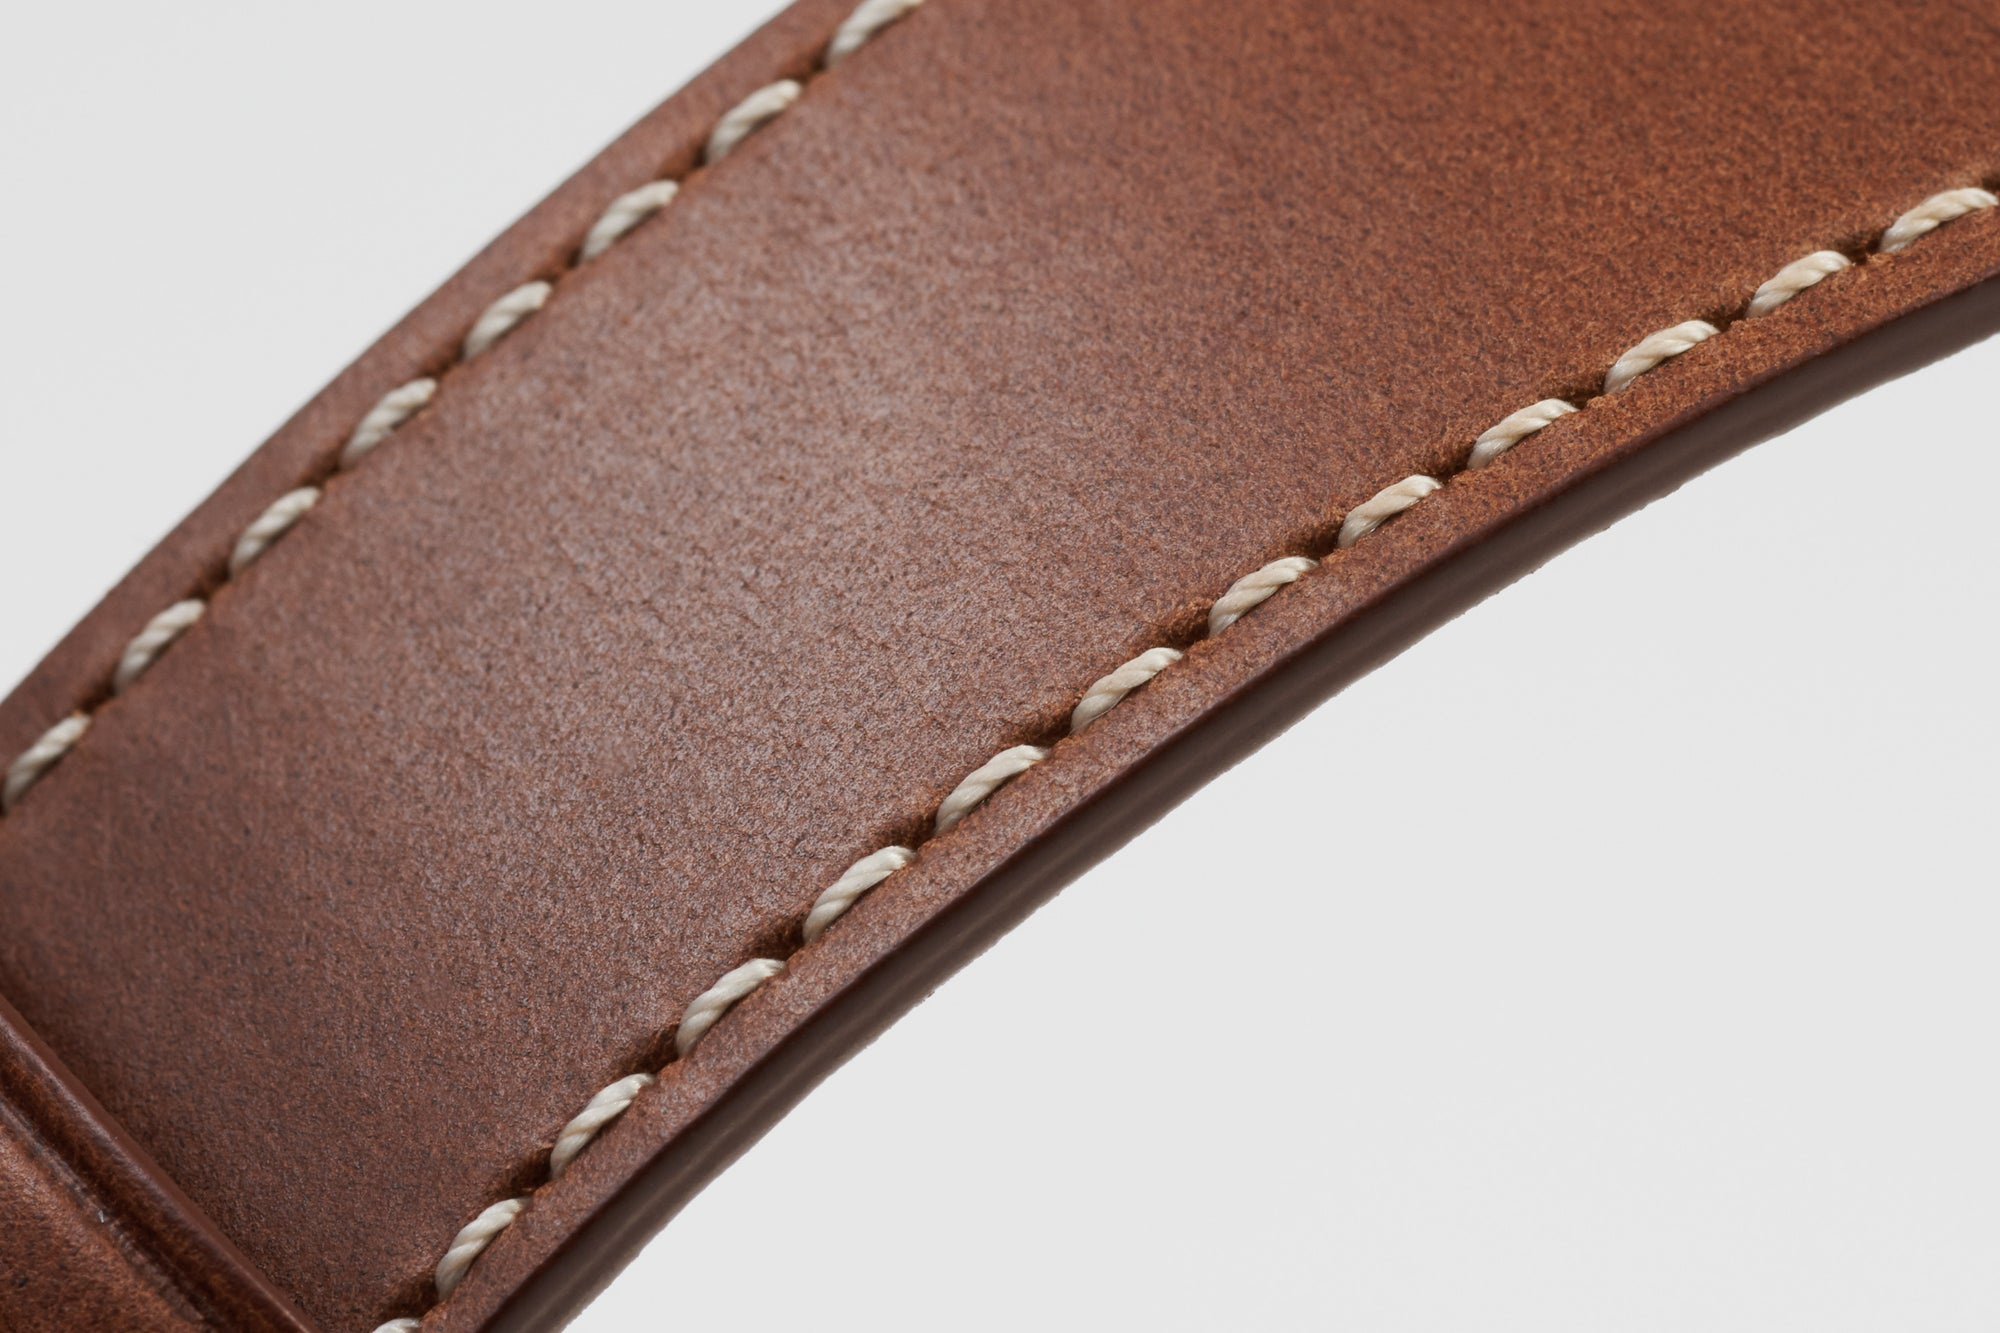 Pin and Buckle Apple Watch Bands - Full Grain Vegetable Tanned Leather - Luxe - Chestnut Brown - Off-White Stitch